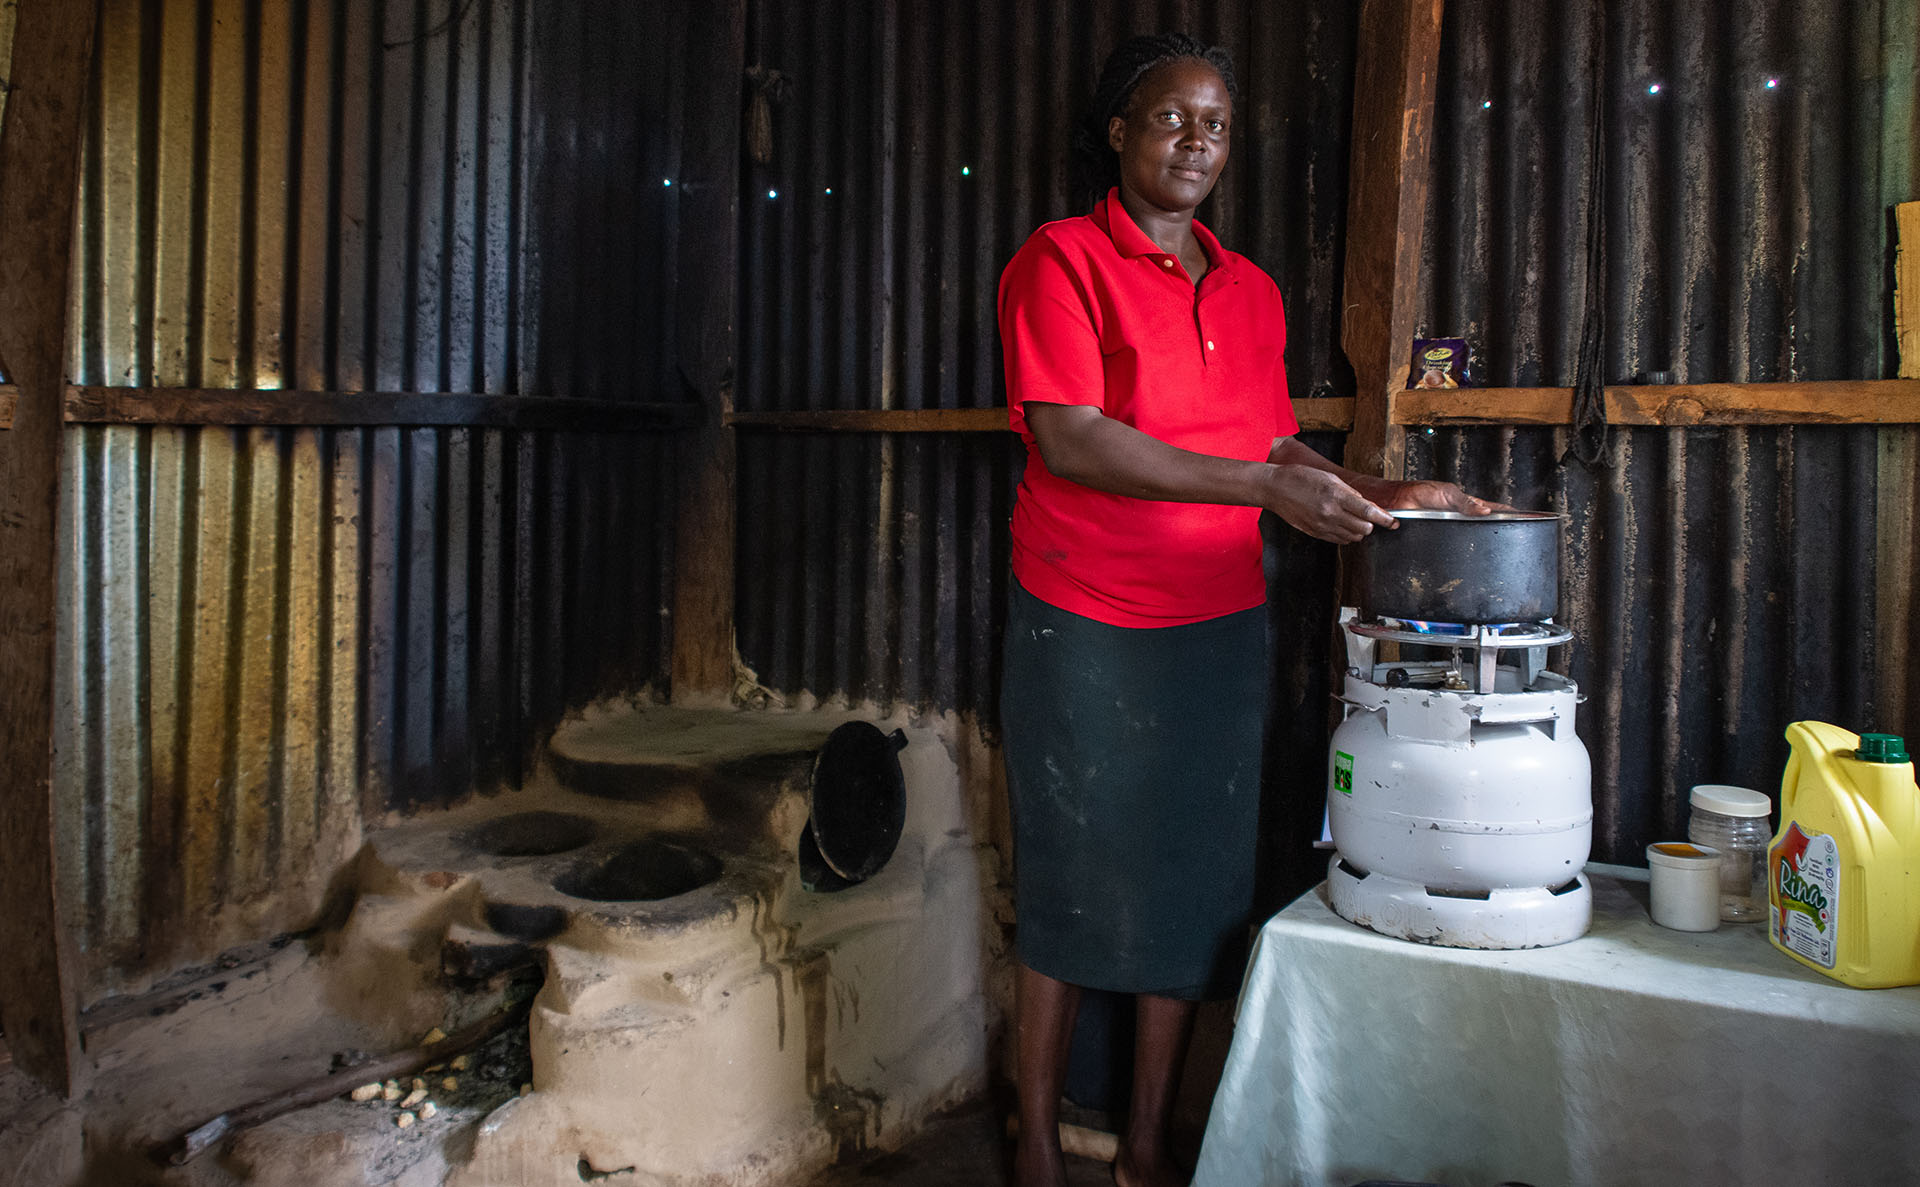 A woman prepares food on an LPG cooker in here home, bit still uses the traditional wood stove for some purposes. This so-called 'stacking' for a variety of reasons, including cost and availability of LPG, and families getting used to using the new fuel for all of their cooking, but it does mean the kitchen is still much more polluted that if LPG was used exclusively